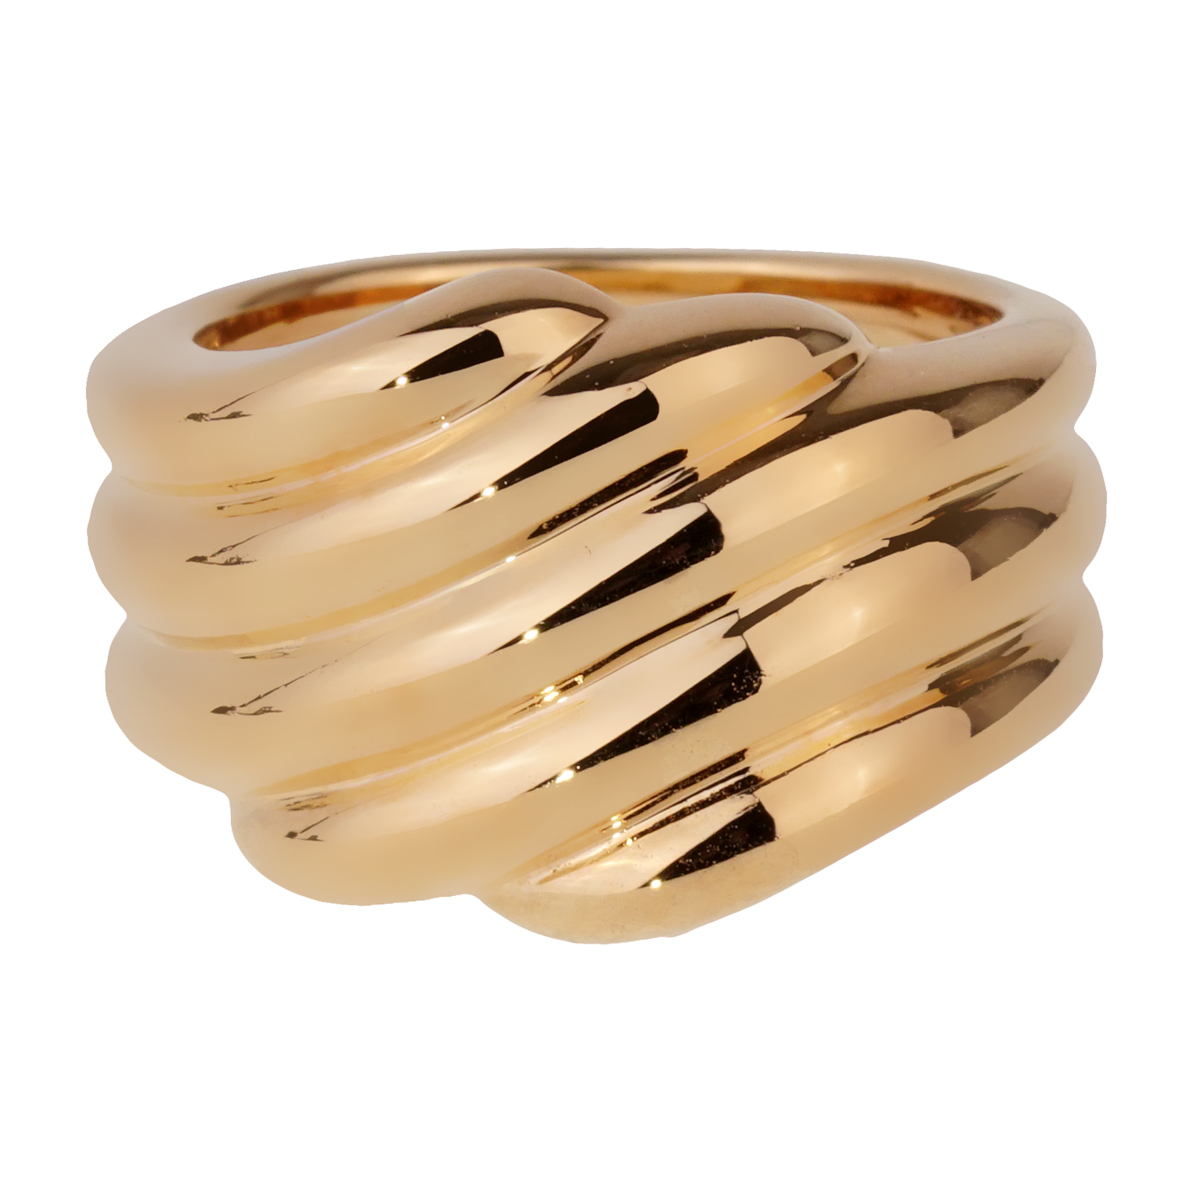 Van Cleef & Arpels Gold Cocktail Ring - Van Cleef and Arpels Jewelry